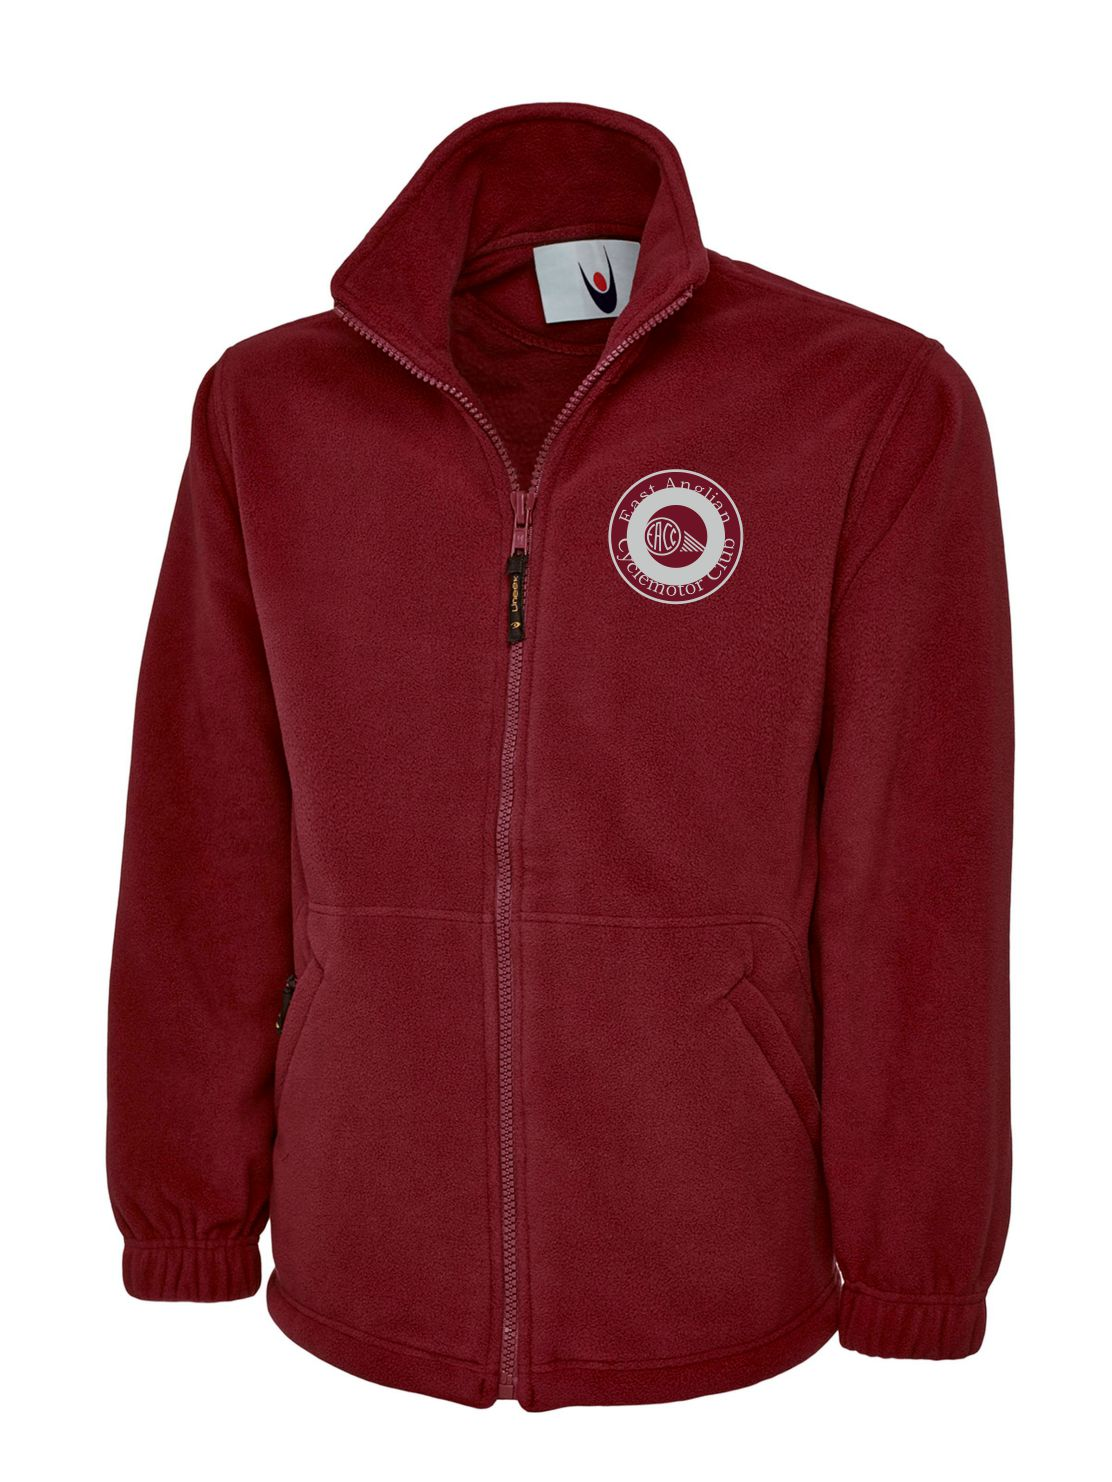 East Anglia Cyclemotor Club Fleece